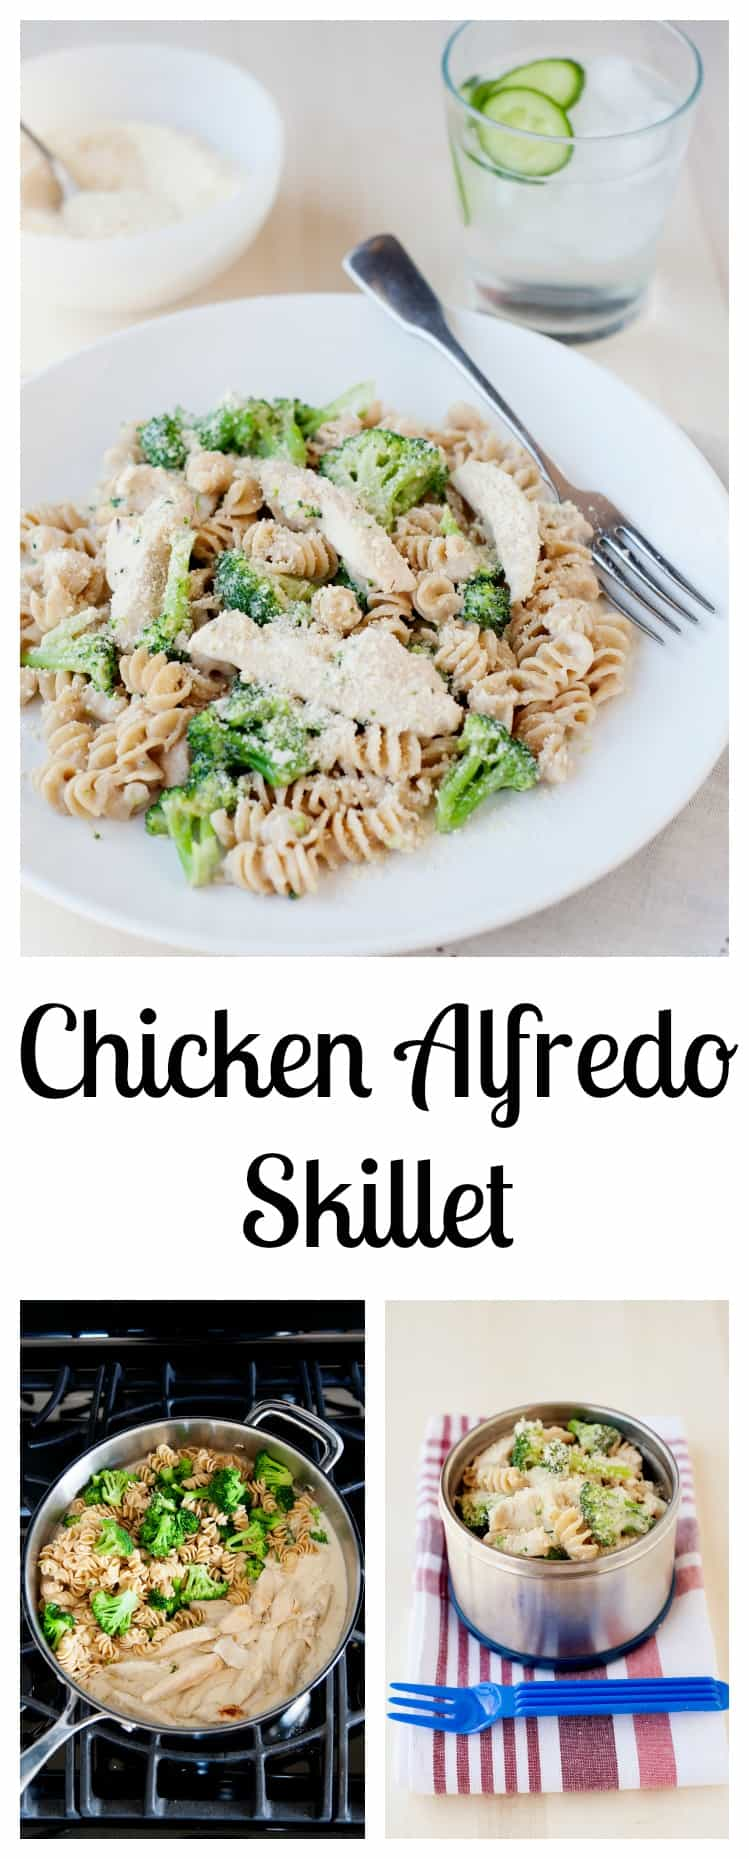 Looking for an easy weeknight meal, that will be on the table in minutes? If you have a skillet, we have a Chicken and Broccoli Alfredo recipe to do just that.